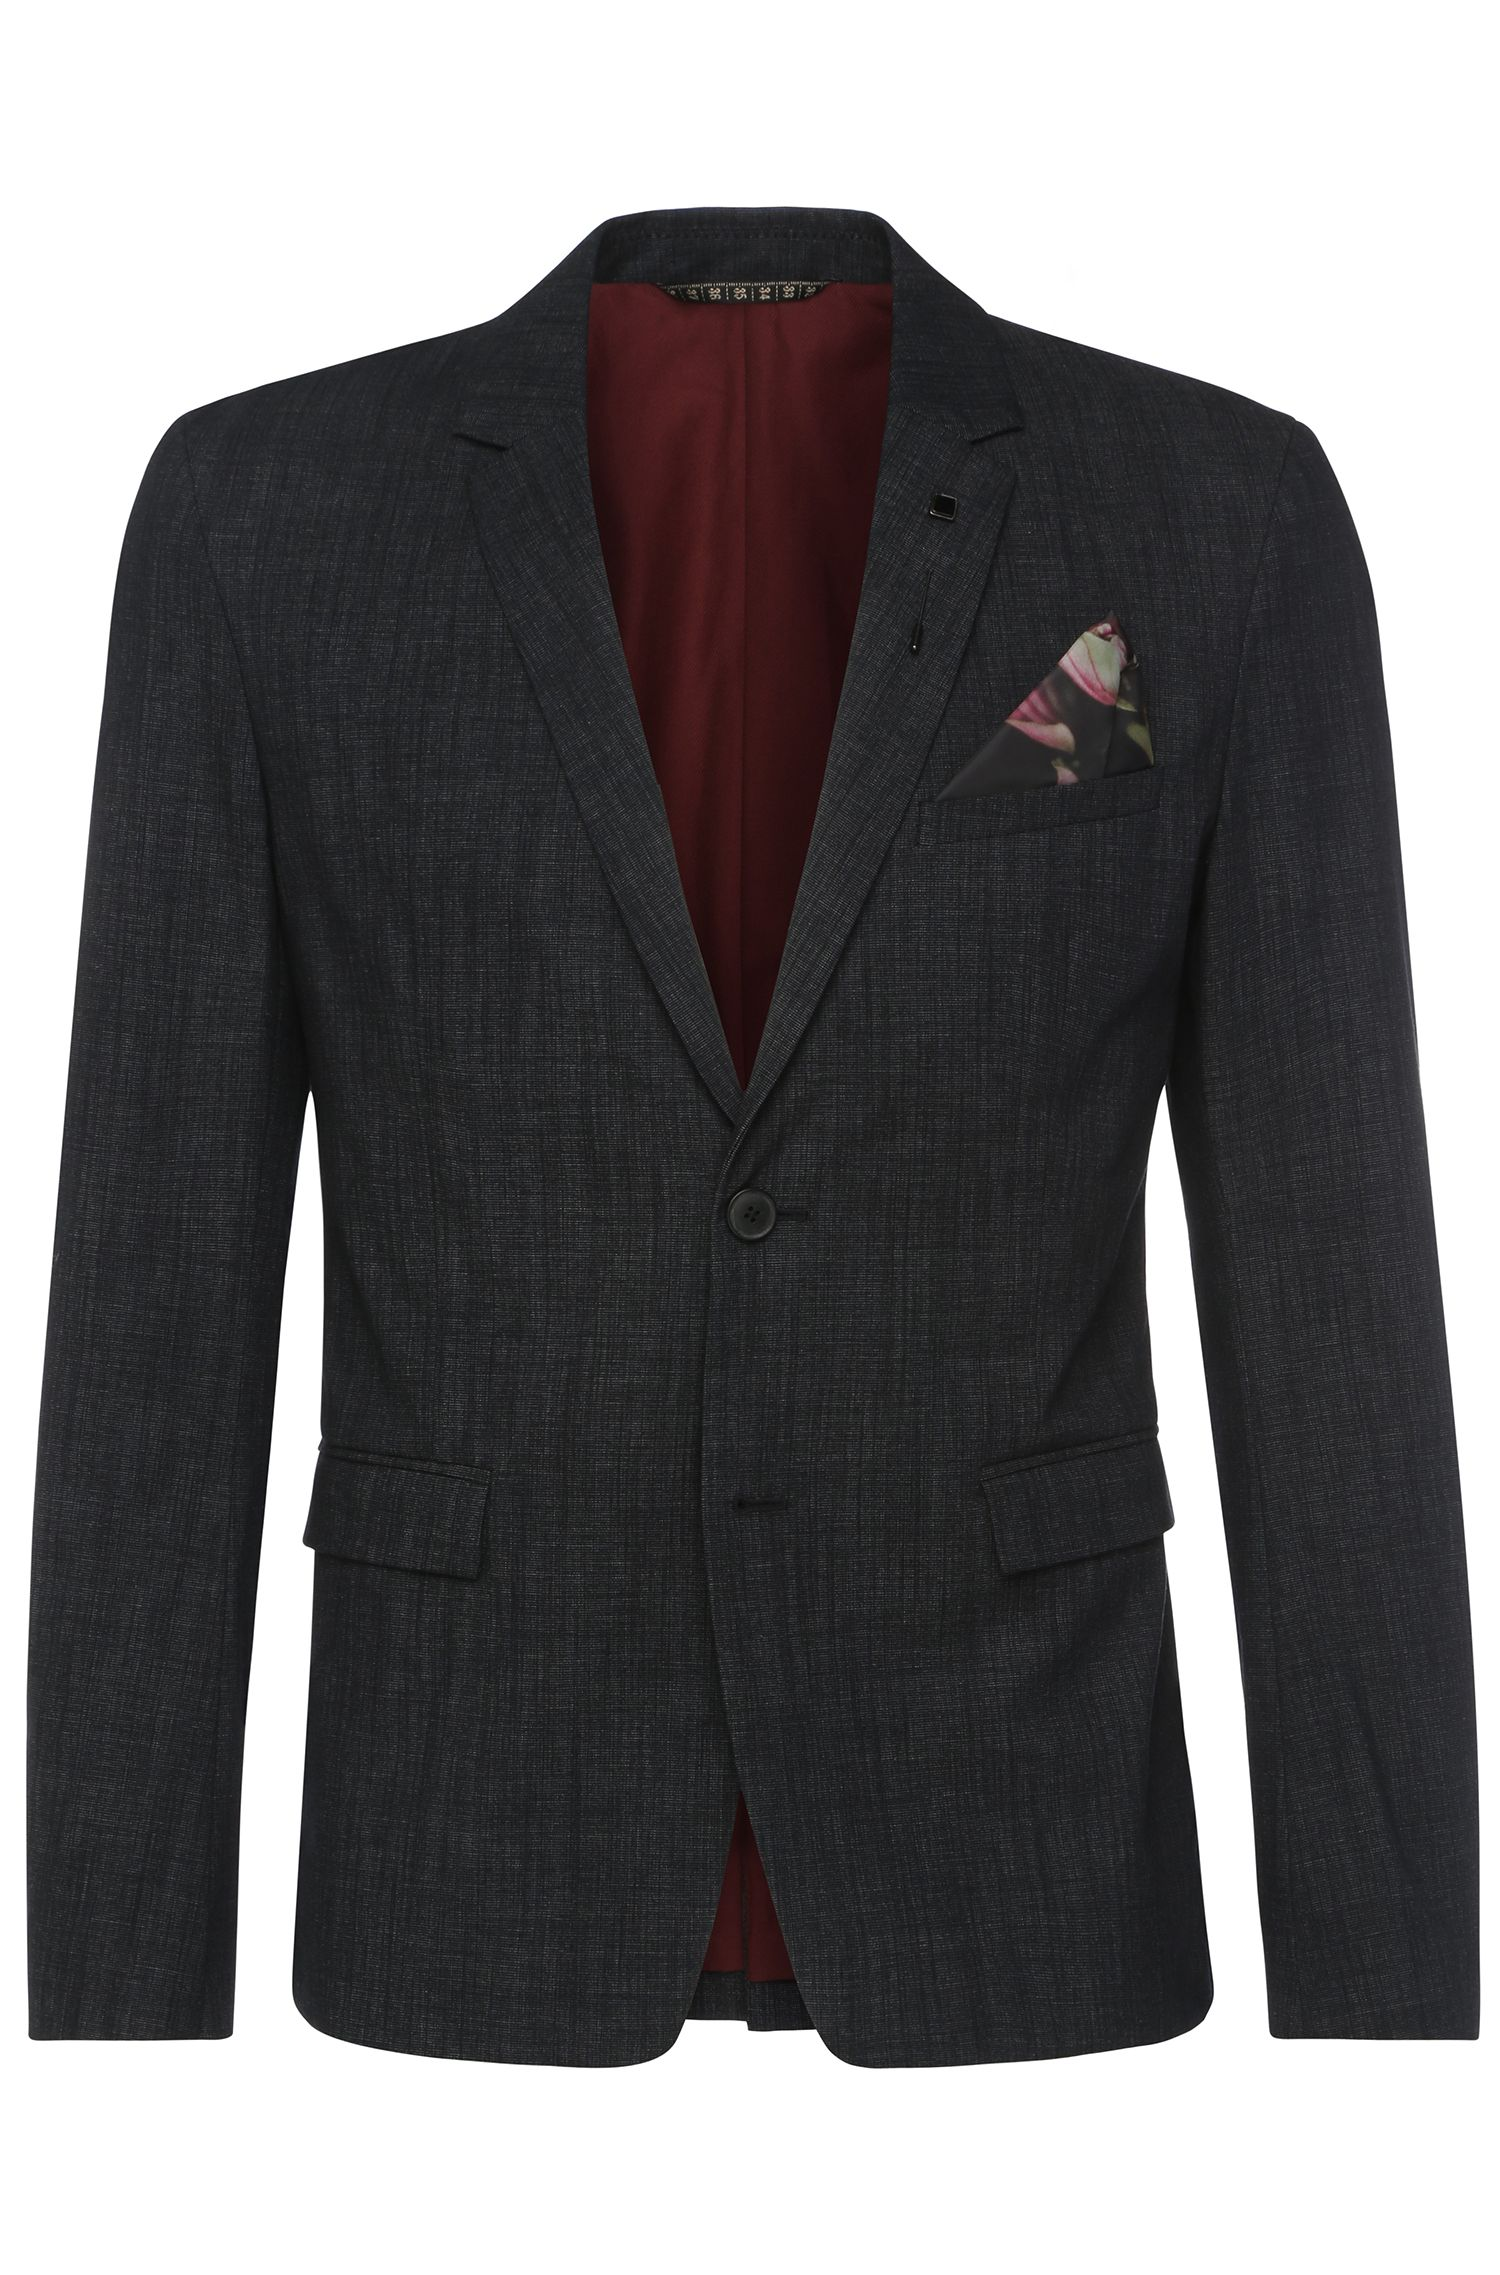 Stretch Cotton Blend Sport Coat, Slim Fit | Bistock BS